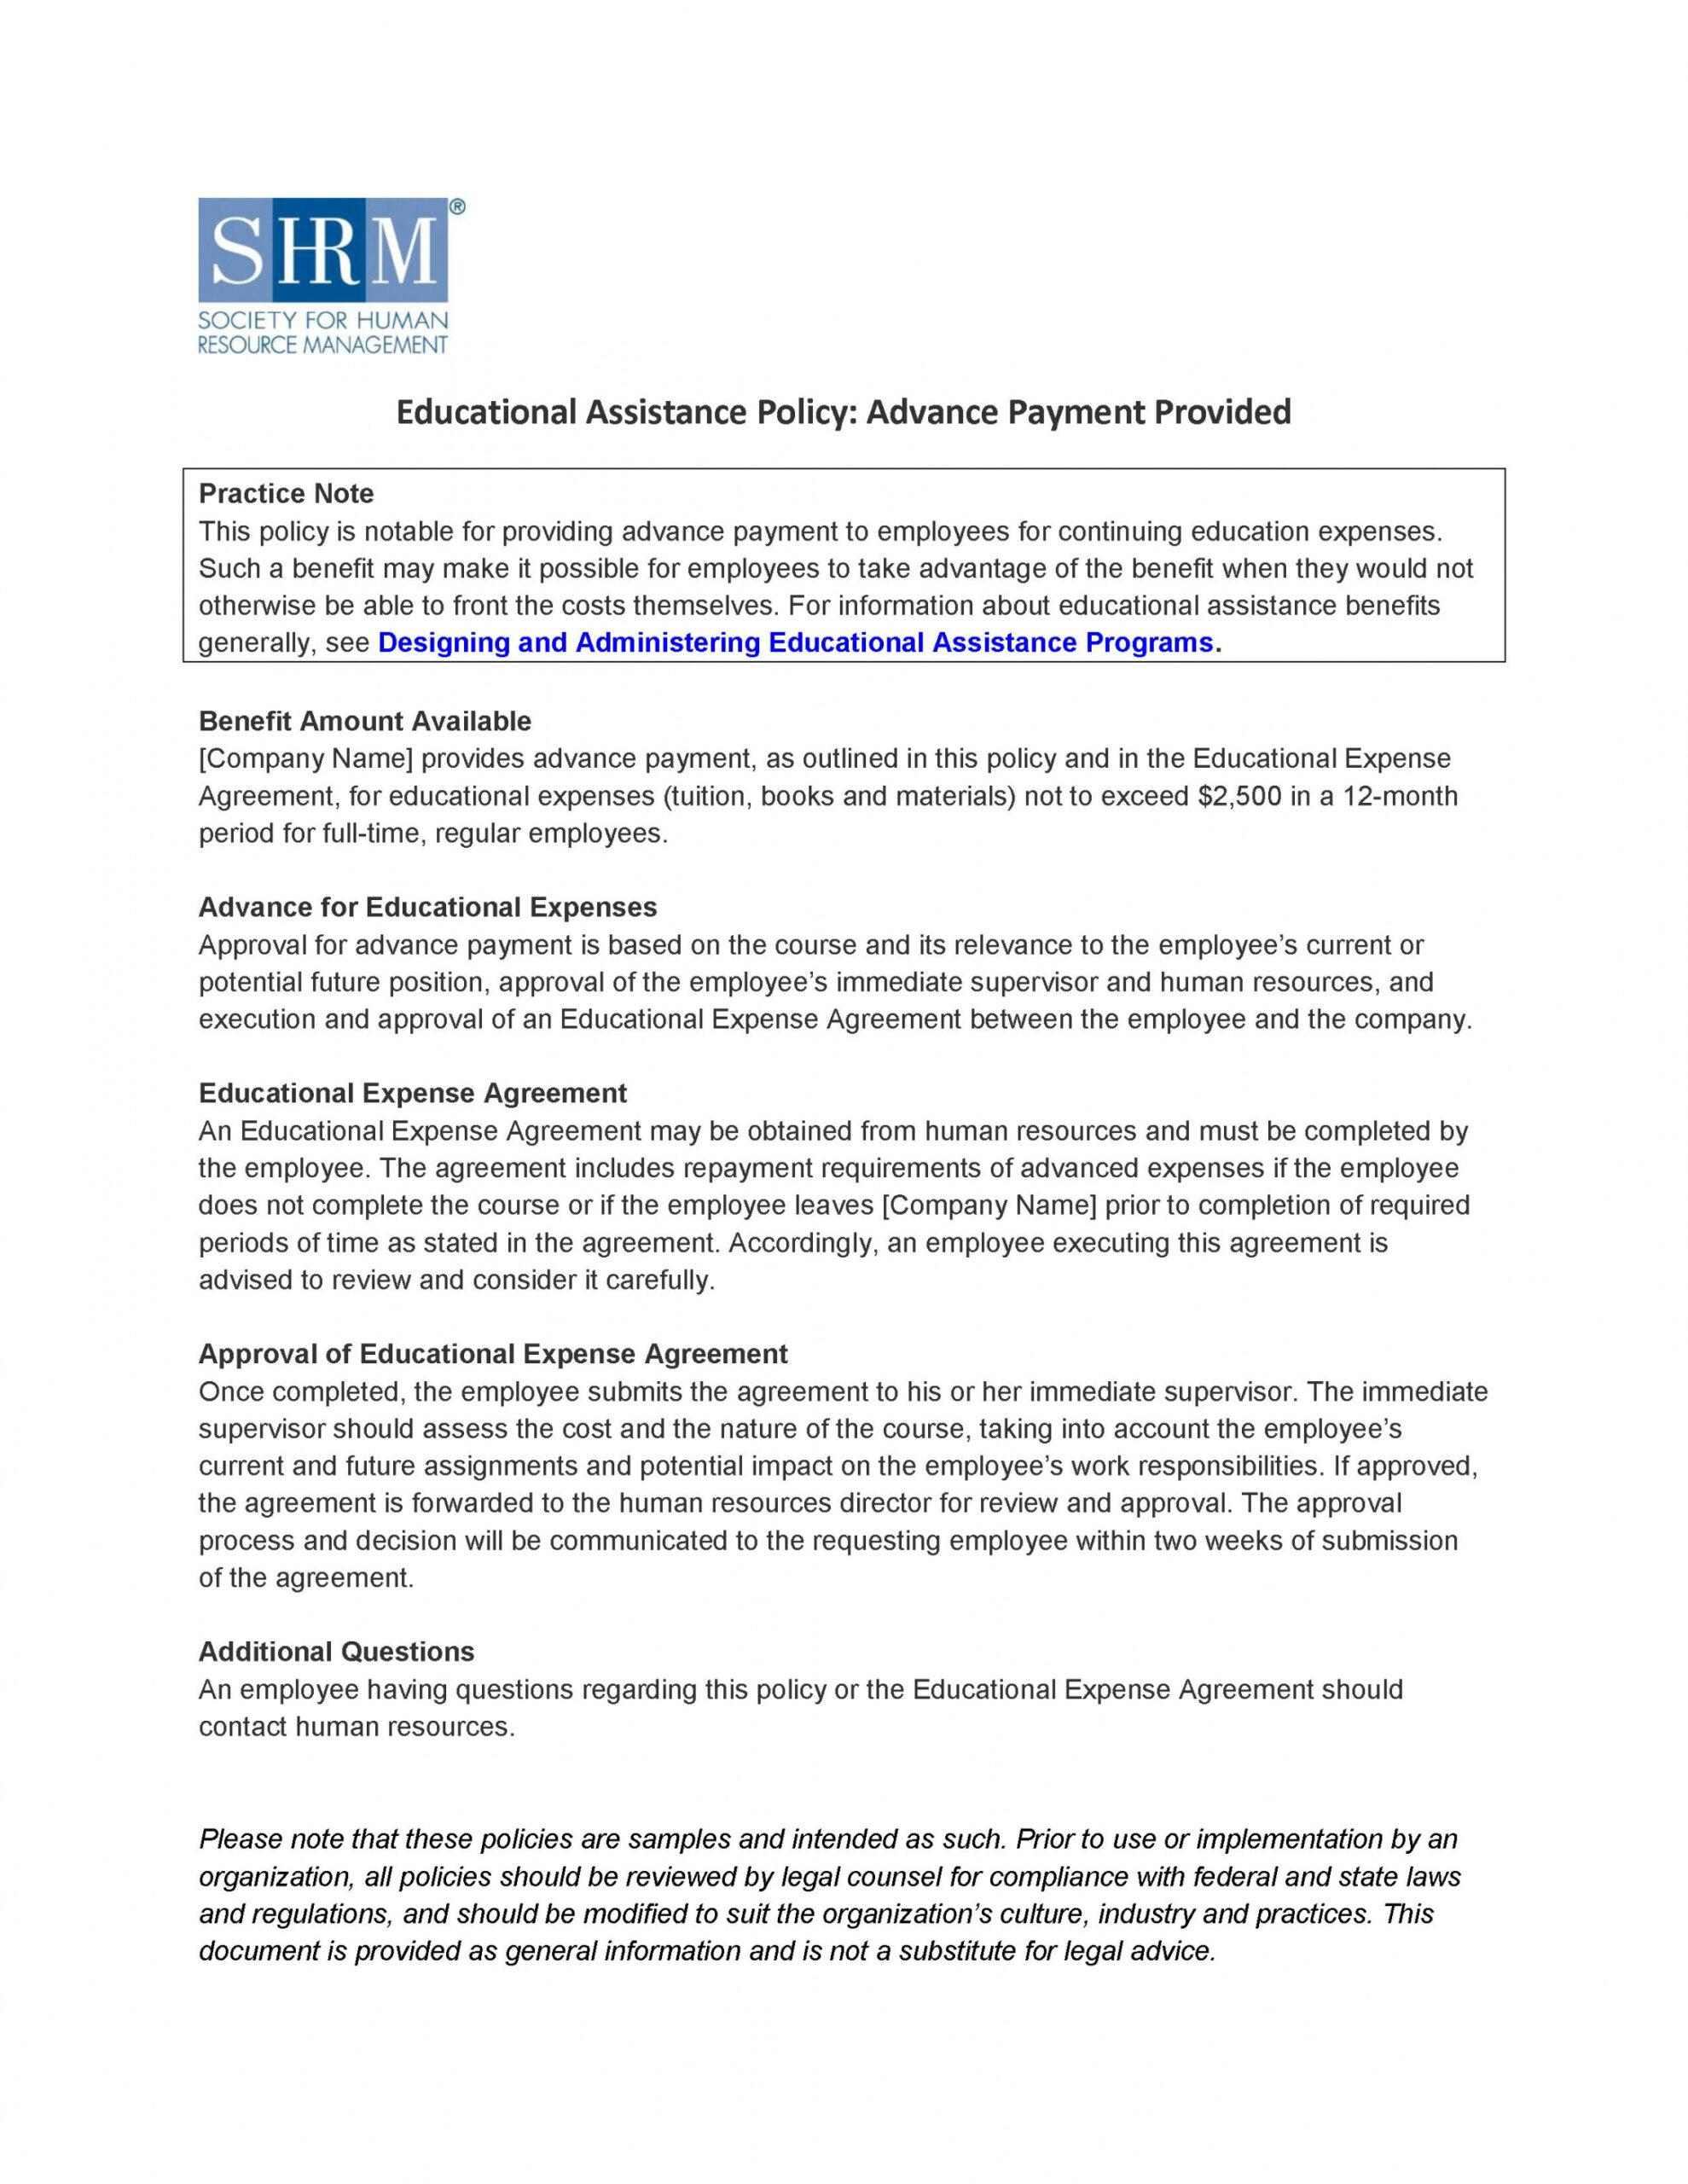 Free Commission Based Employment Contract Template Word